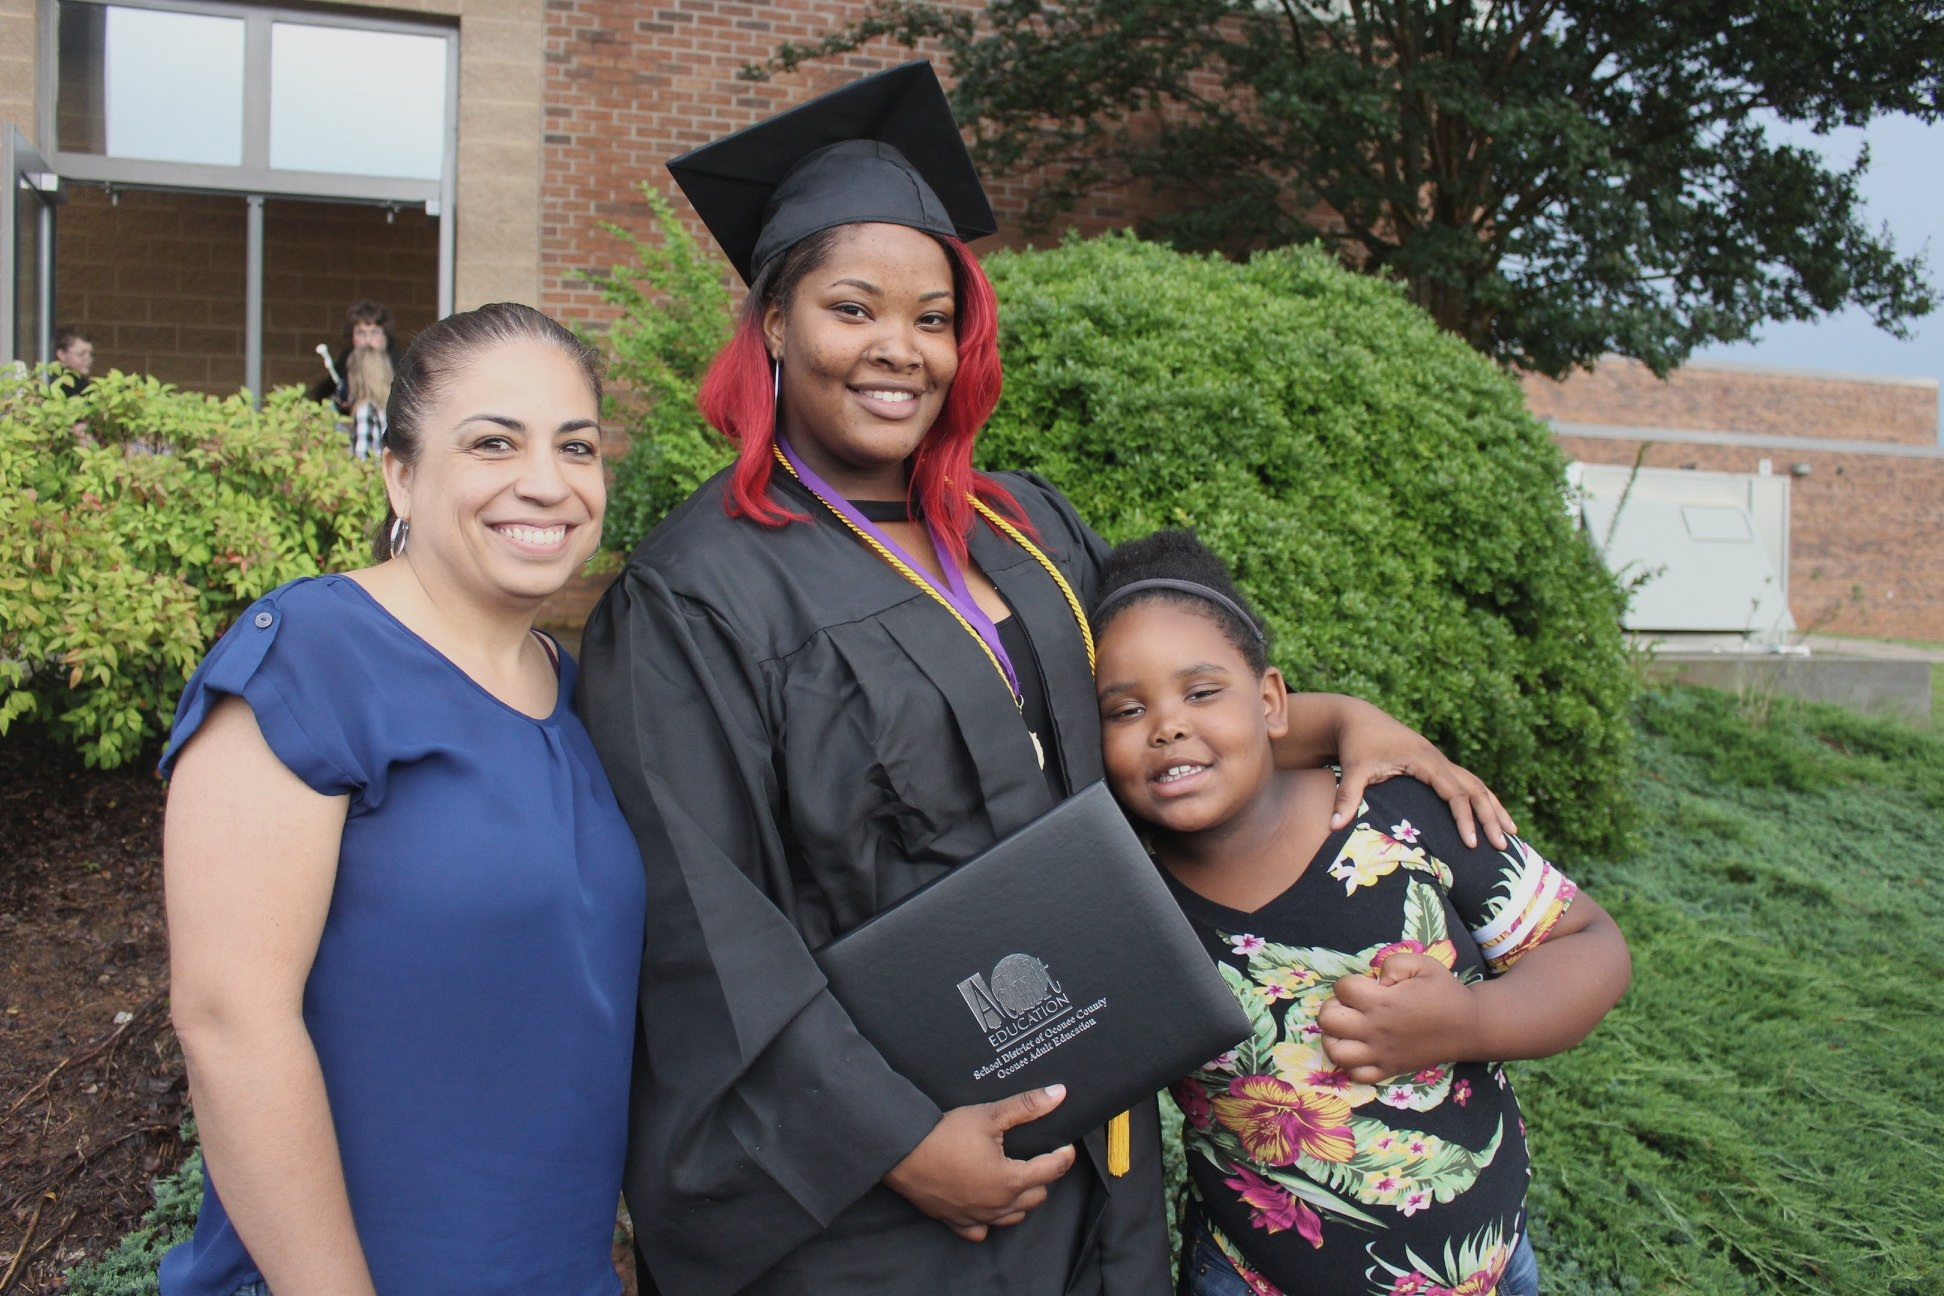 """I am so thankful for Ripple of One! Without them, I would have never graduated and received my diploma. With all the support and love, I made it happen!"" – Almon"